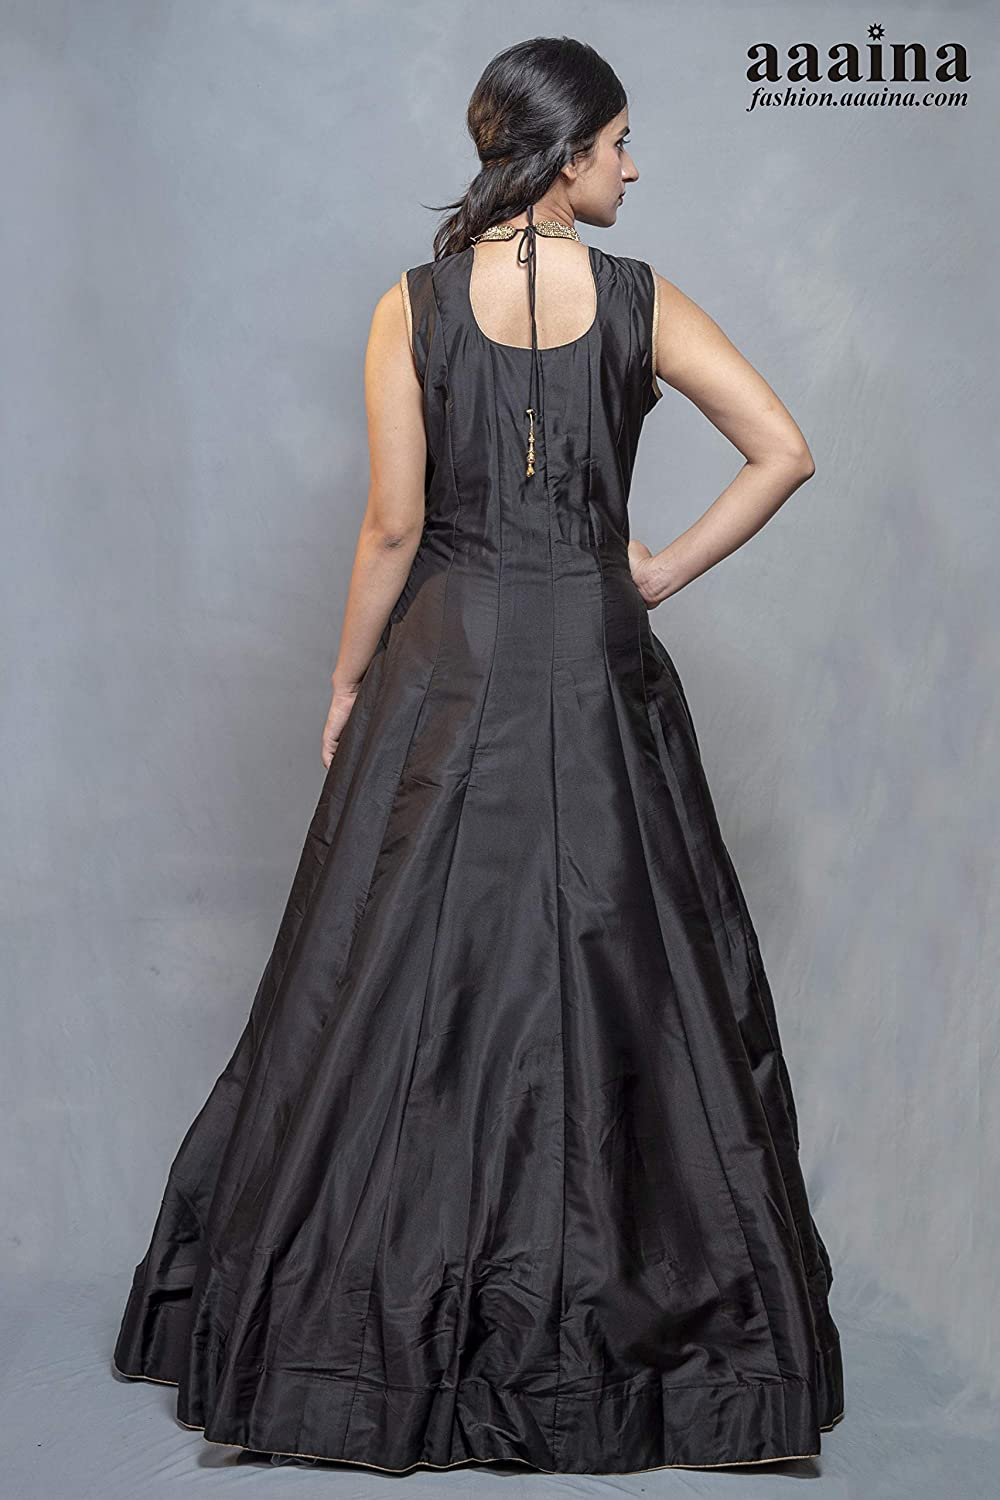 d80a1ea3cf aaaina® Silk Fabric Fully Flaired Black Floor Touch Gown Style with Heavy  Golden Stone Rays on Neck